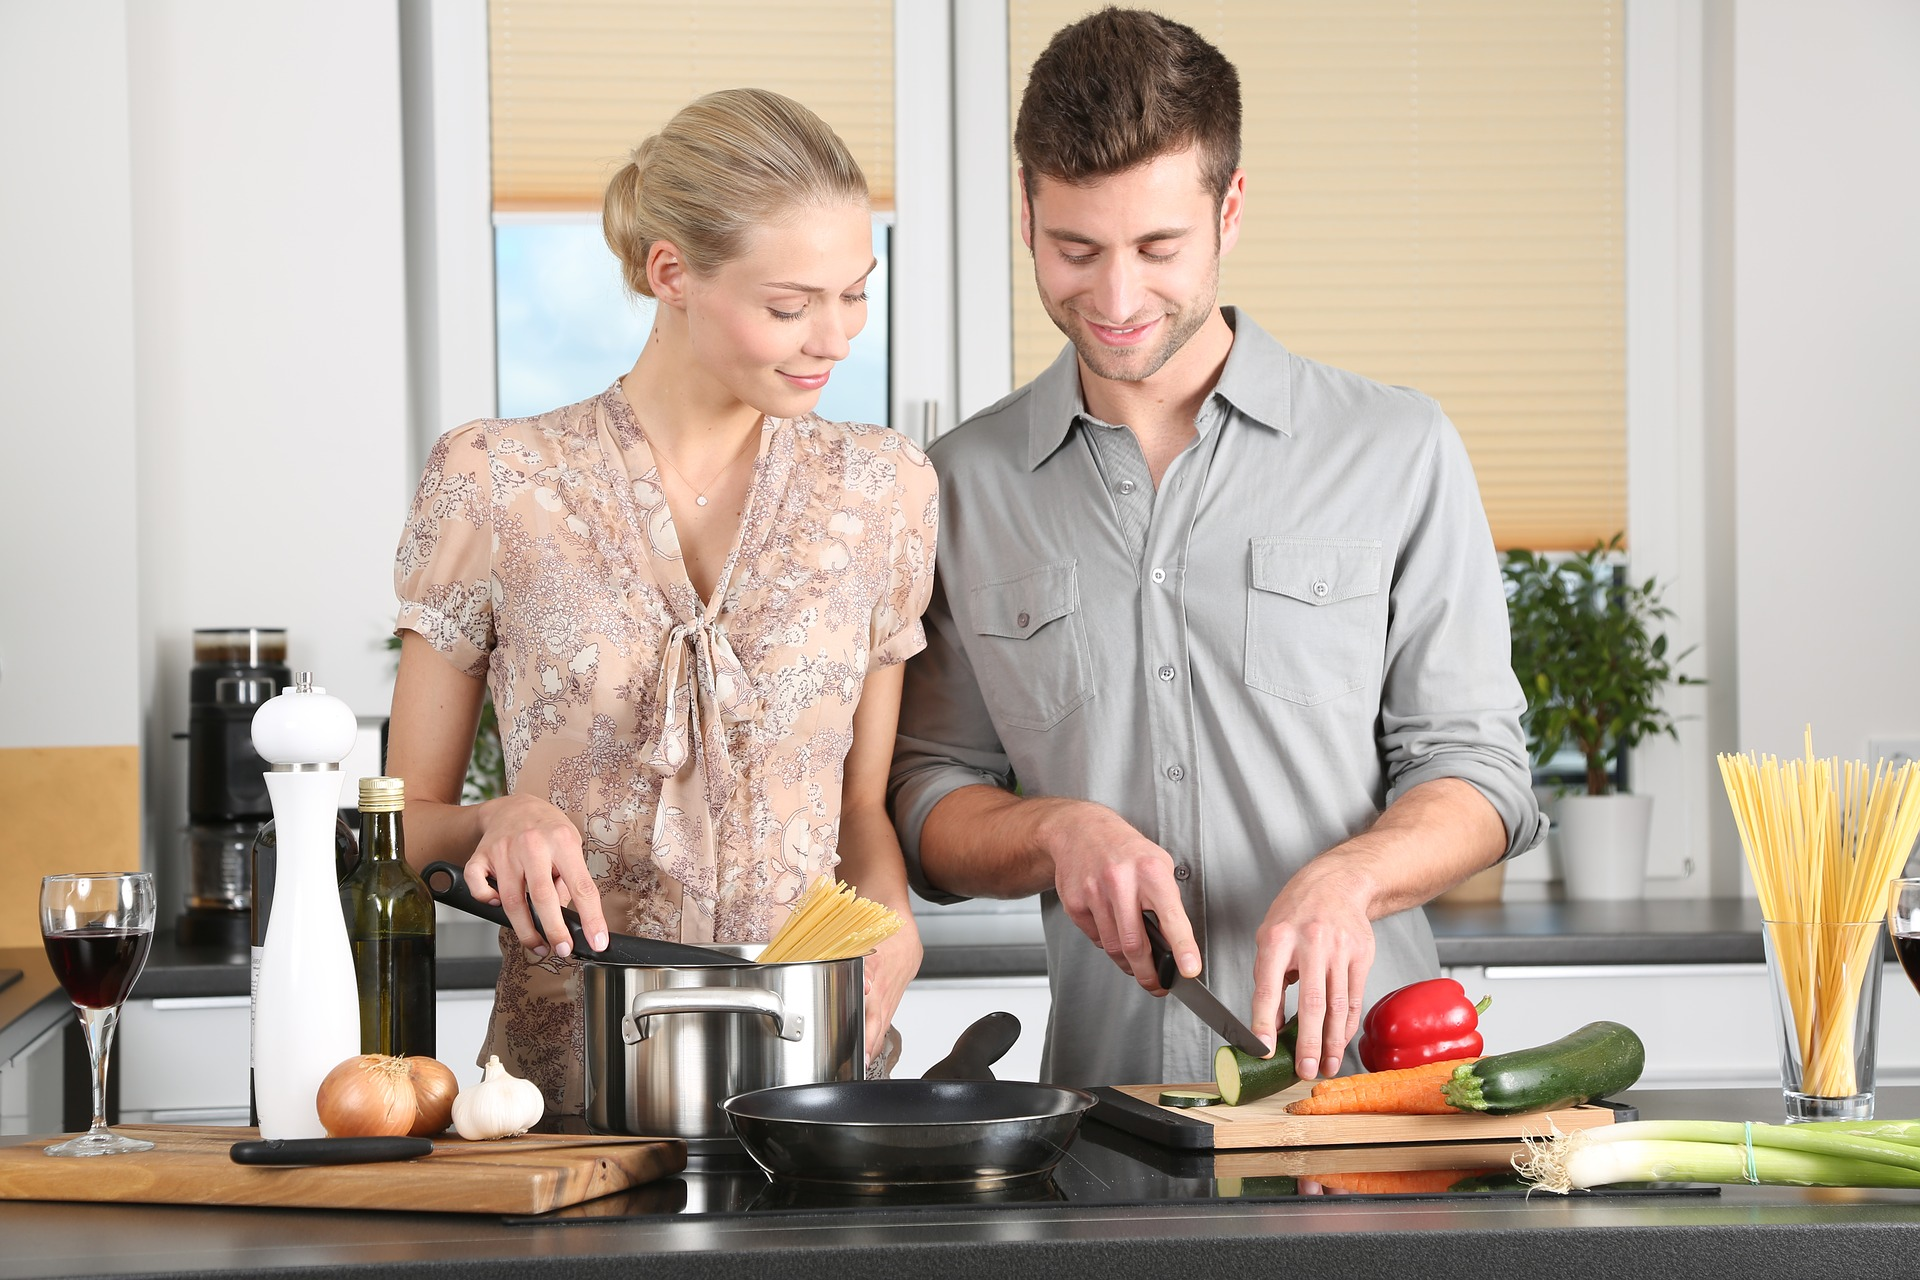 Man and woman preparing vegetables and pasta in the kitchen together smiling